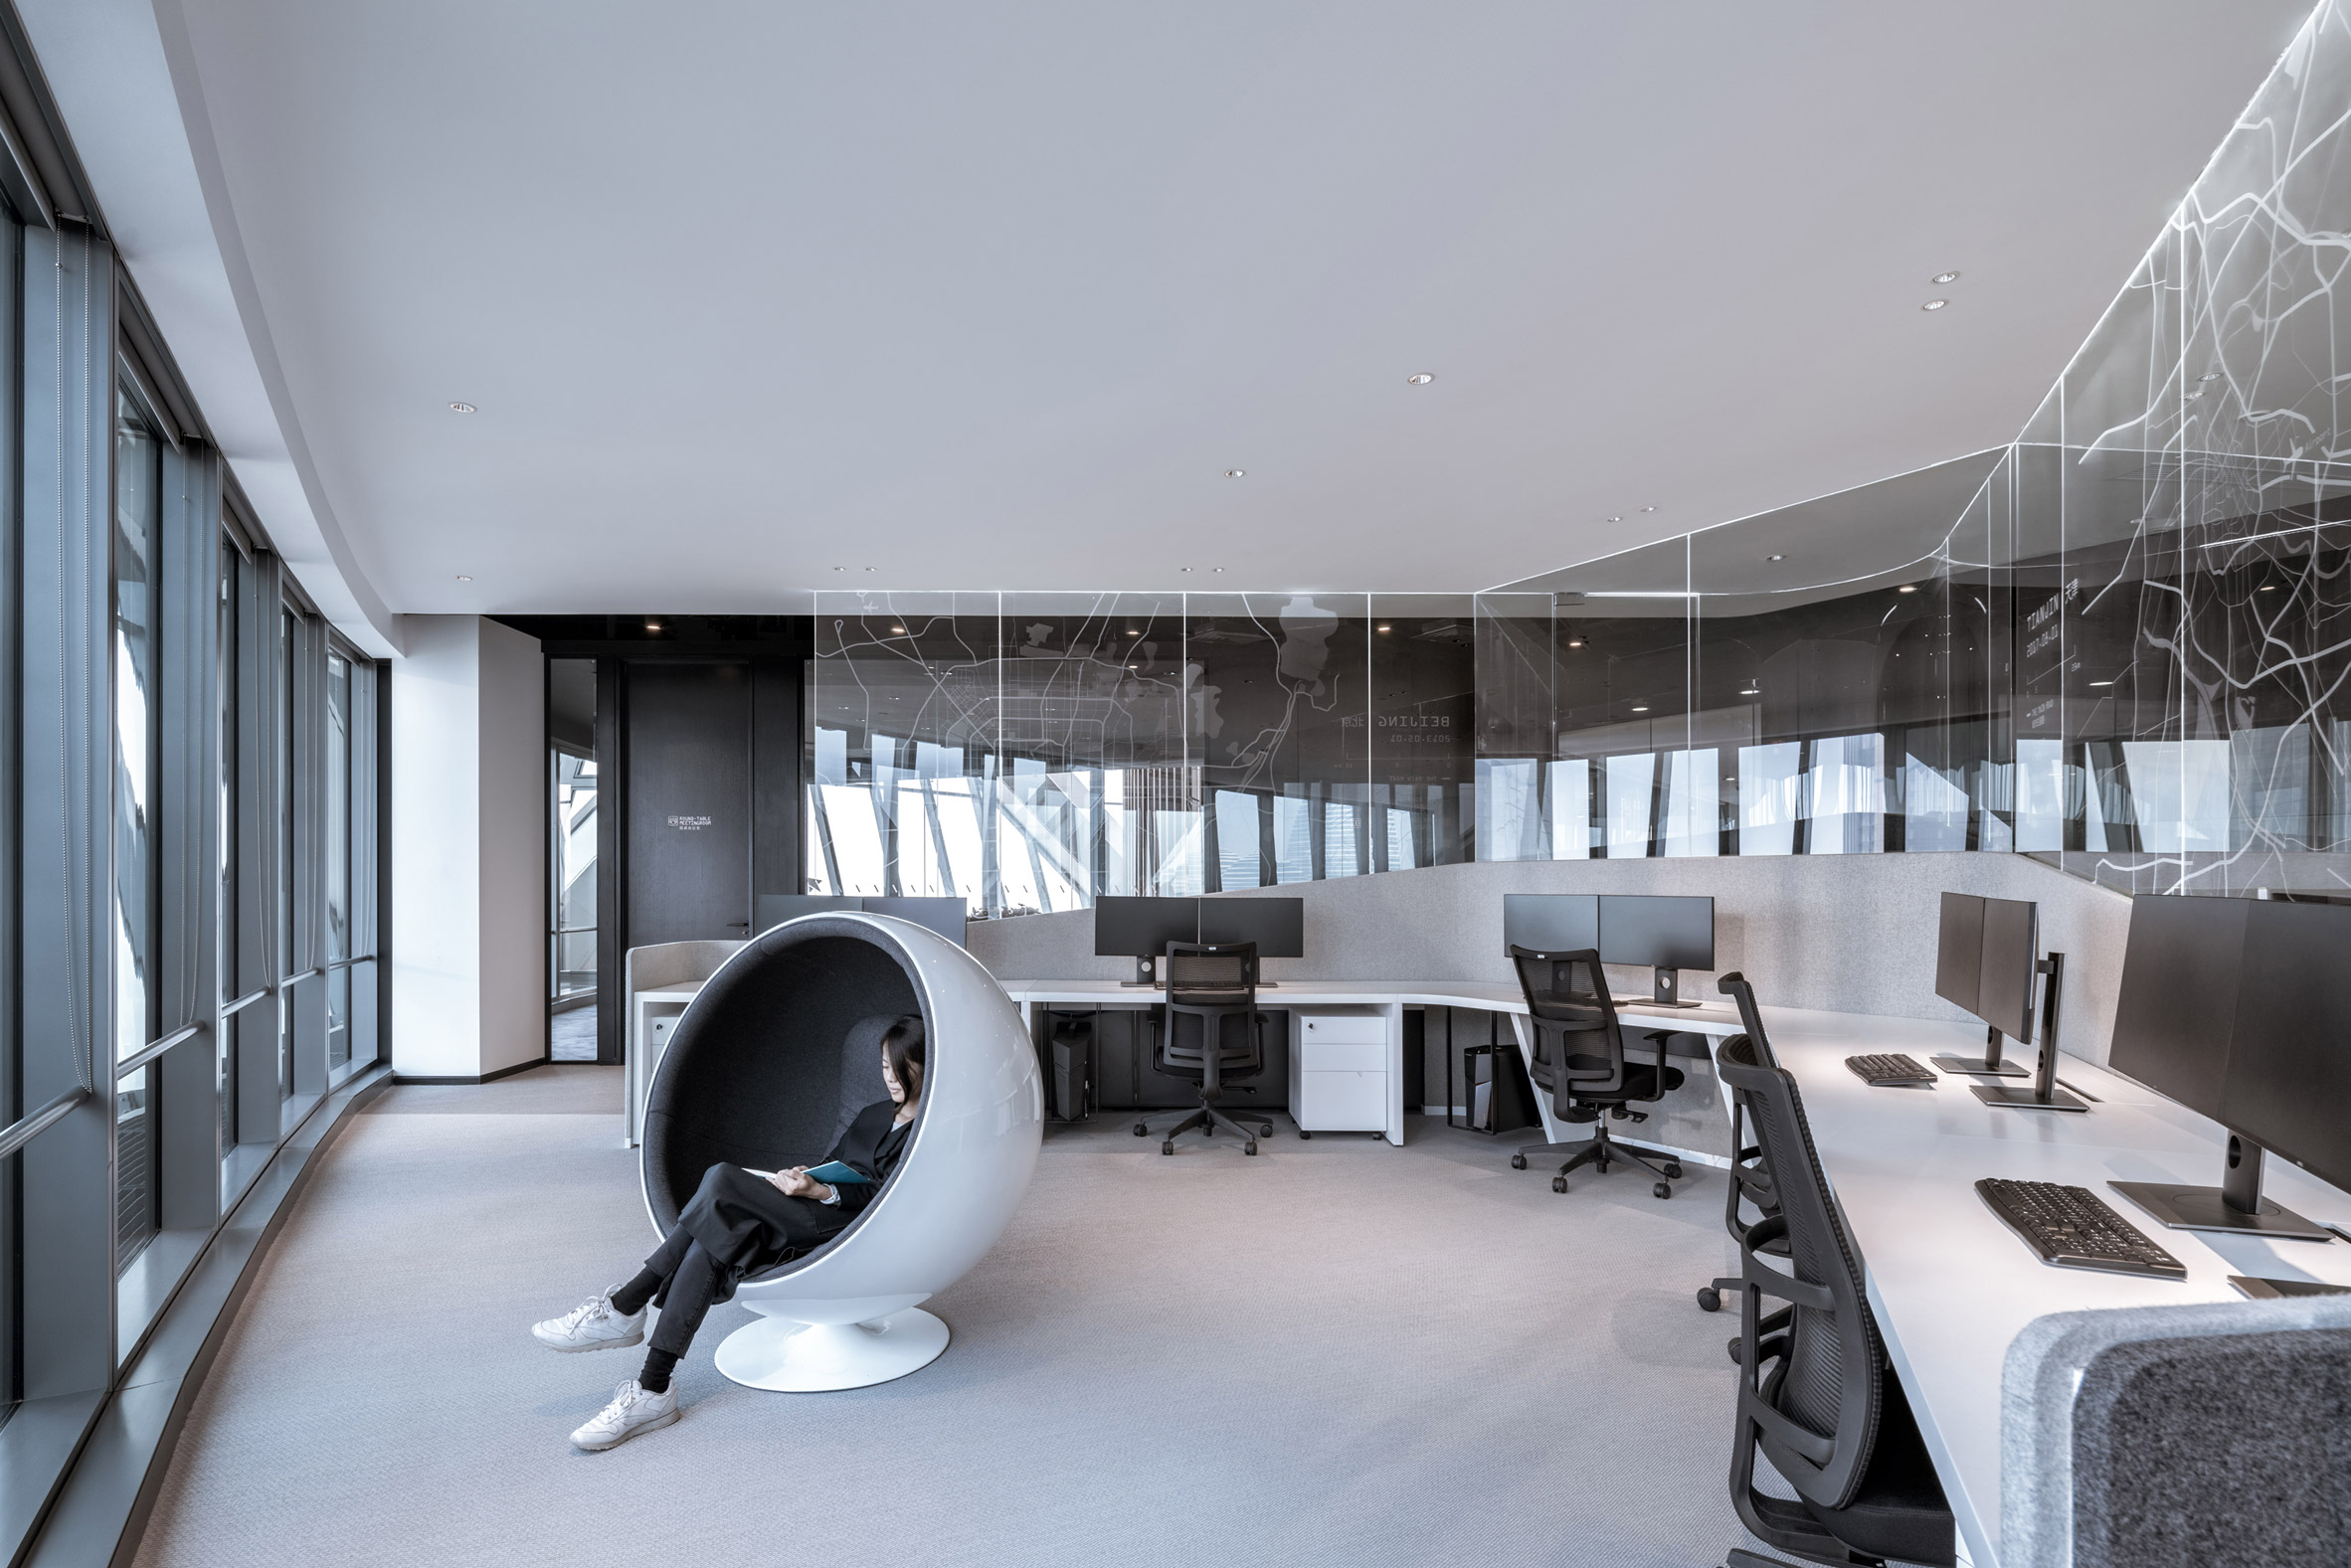 Raydata office headquarters by Precht